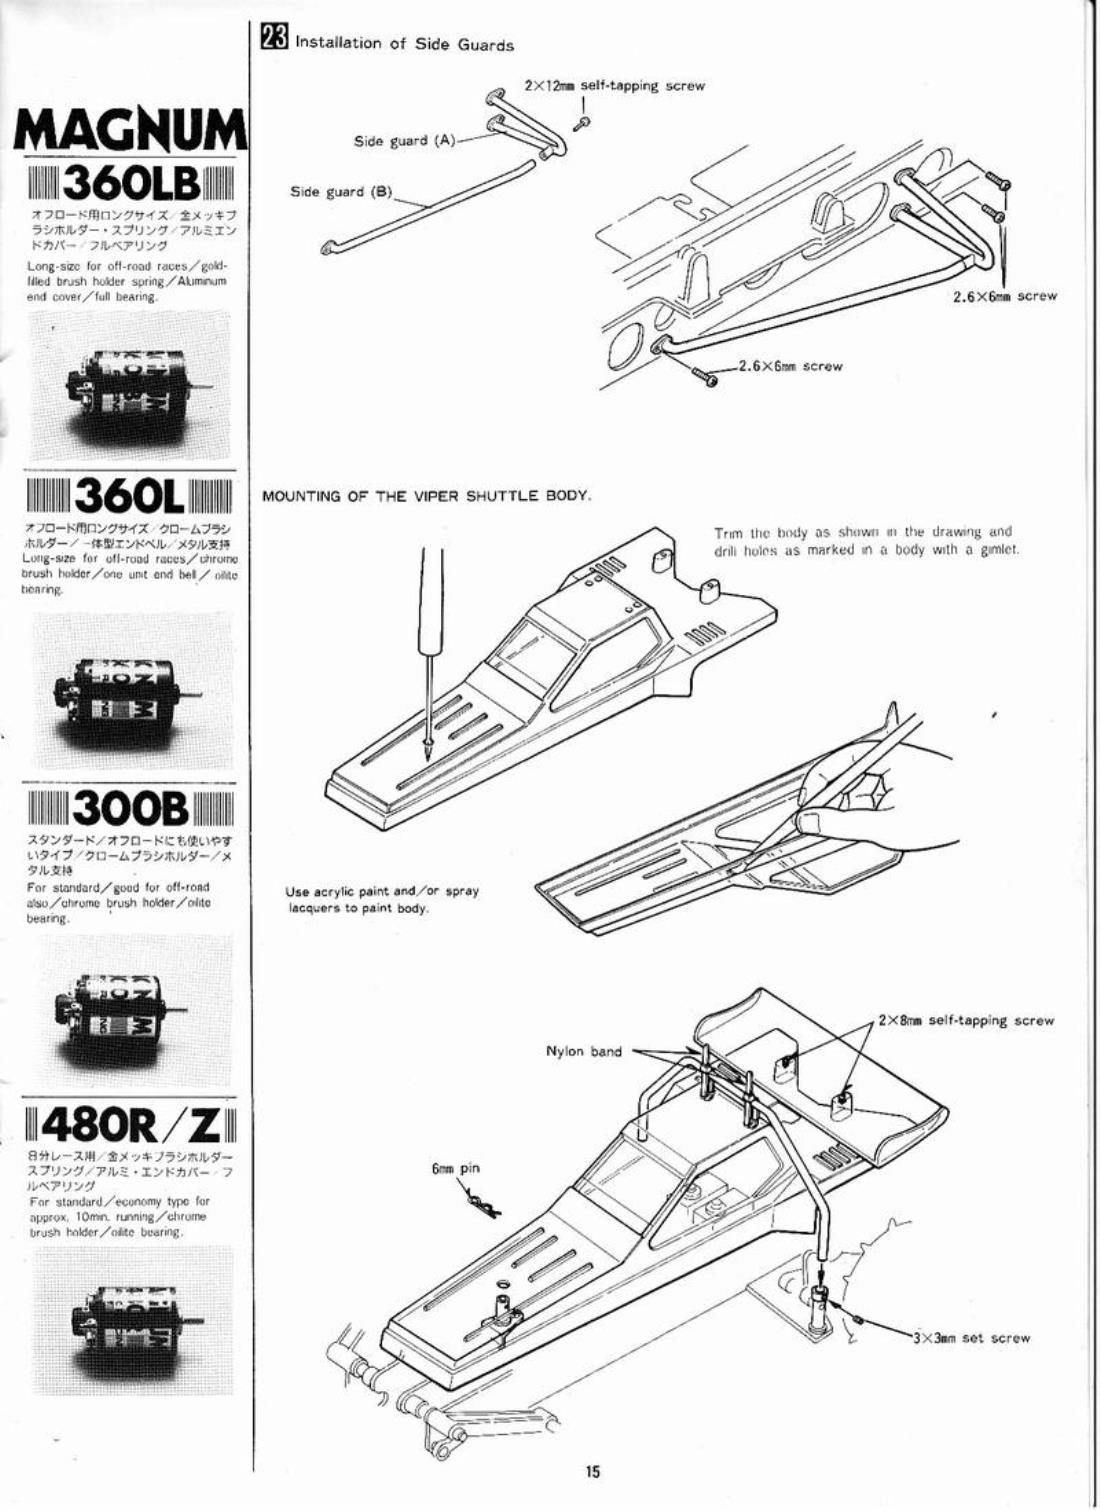 99986: AYK from Spike showroom, AYK Viper assembly manual